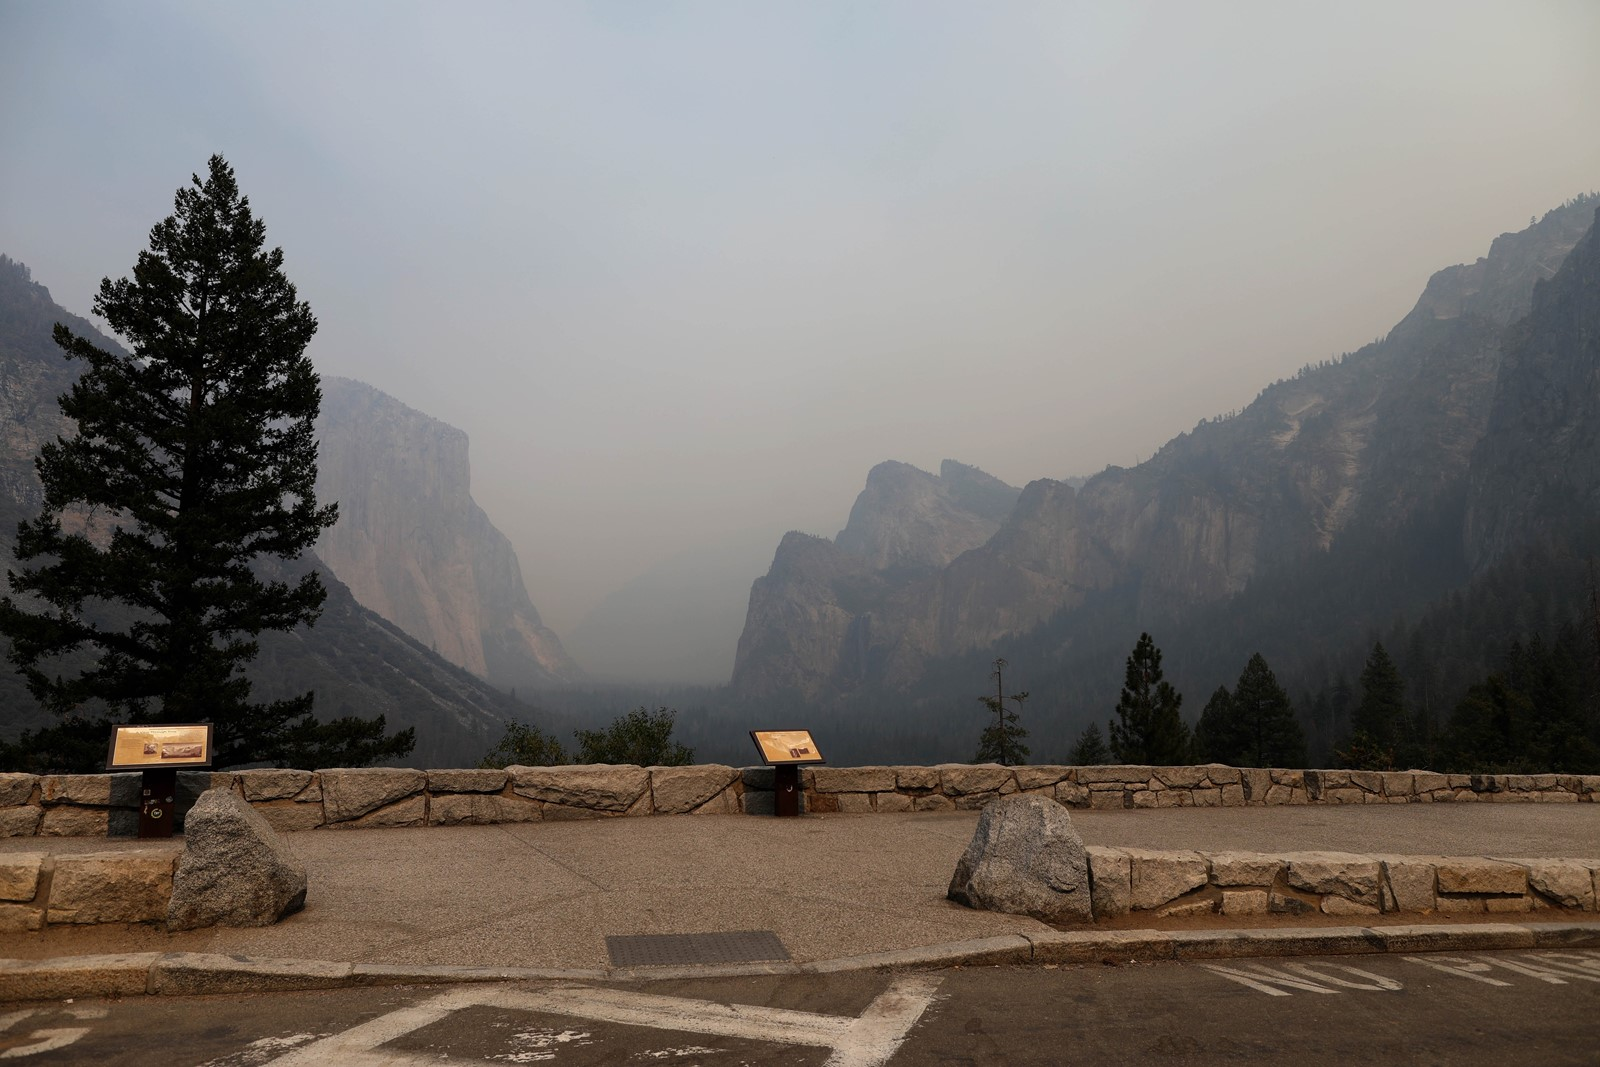 Yosemite Valley the national park's most popular destination, has been closed as a precaution since July 25 due to threats from the massive Ferguson fire. — Photograph: Gary Coronado/Los Angeles Times.